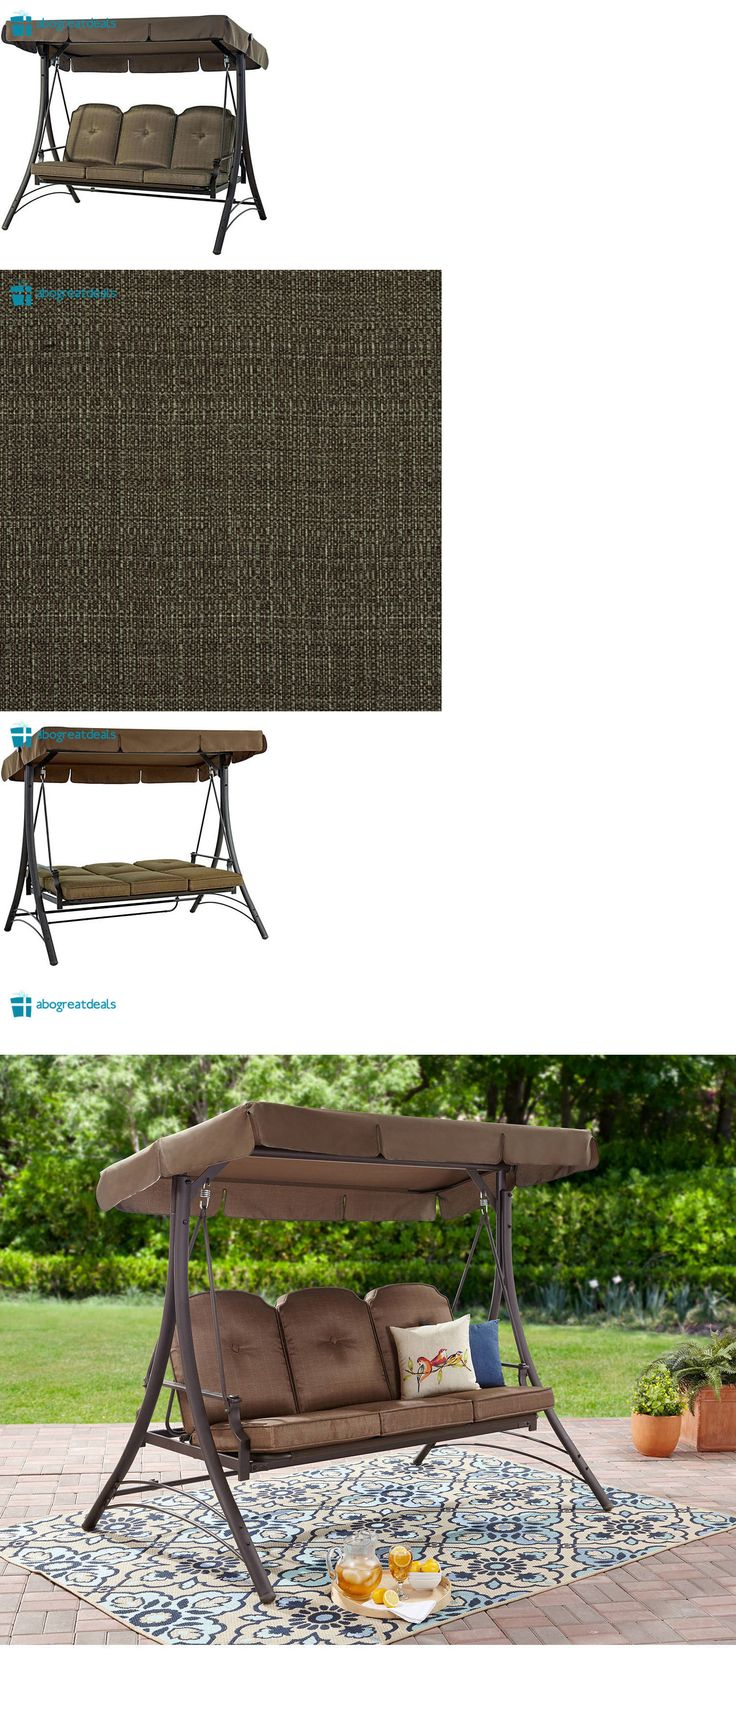 Outdoor hammock bed by the floating bed co - Swings 79700 Outdoor 3 Seat Porch Swing With Canopy Patio Furniture Cushion Chair Hammock Bed